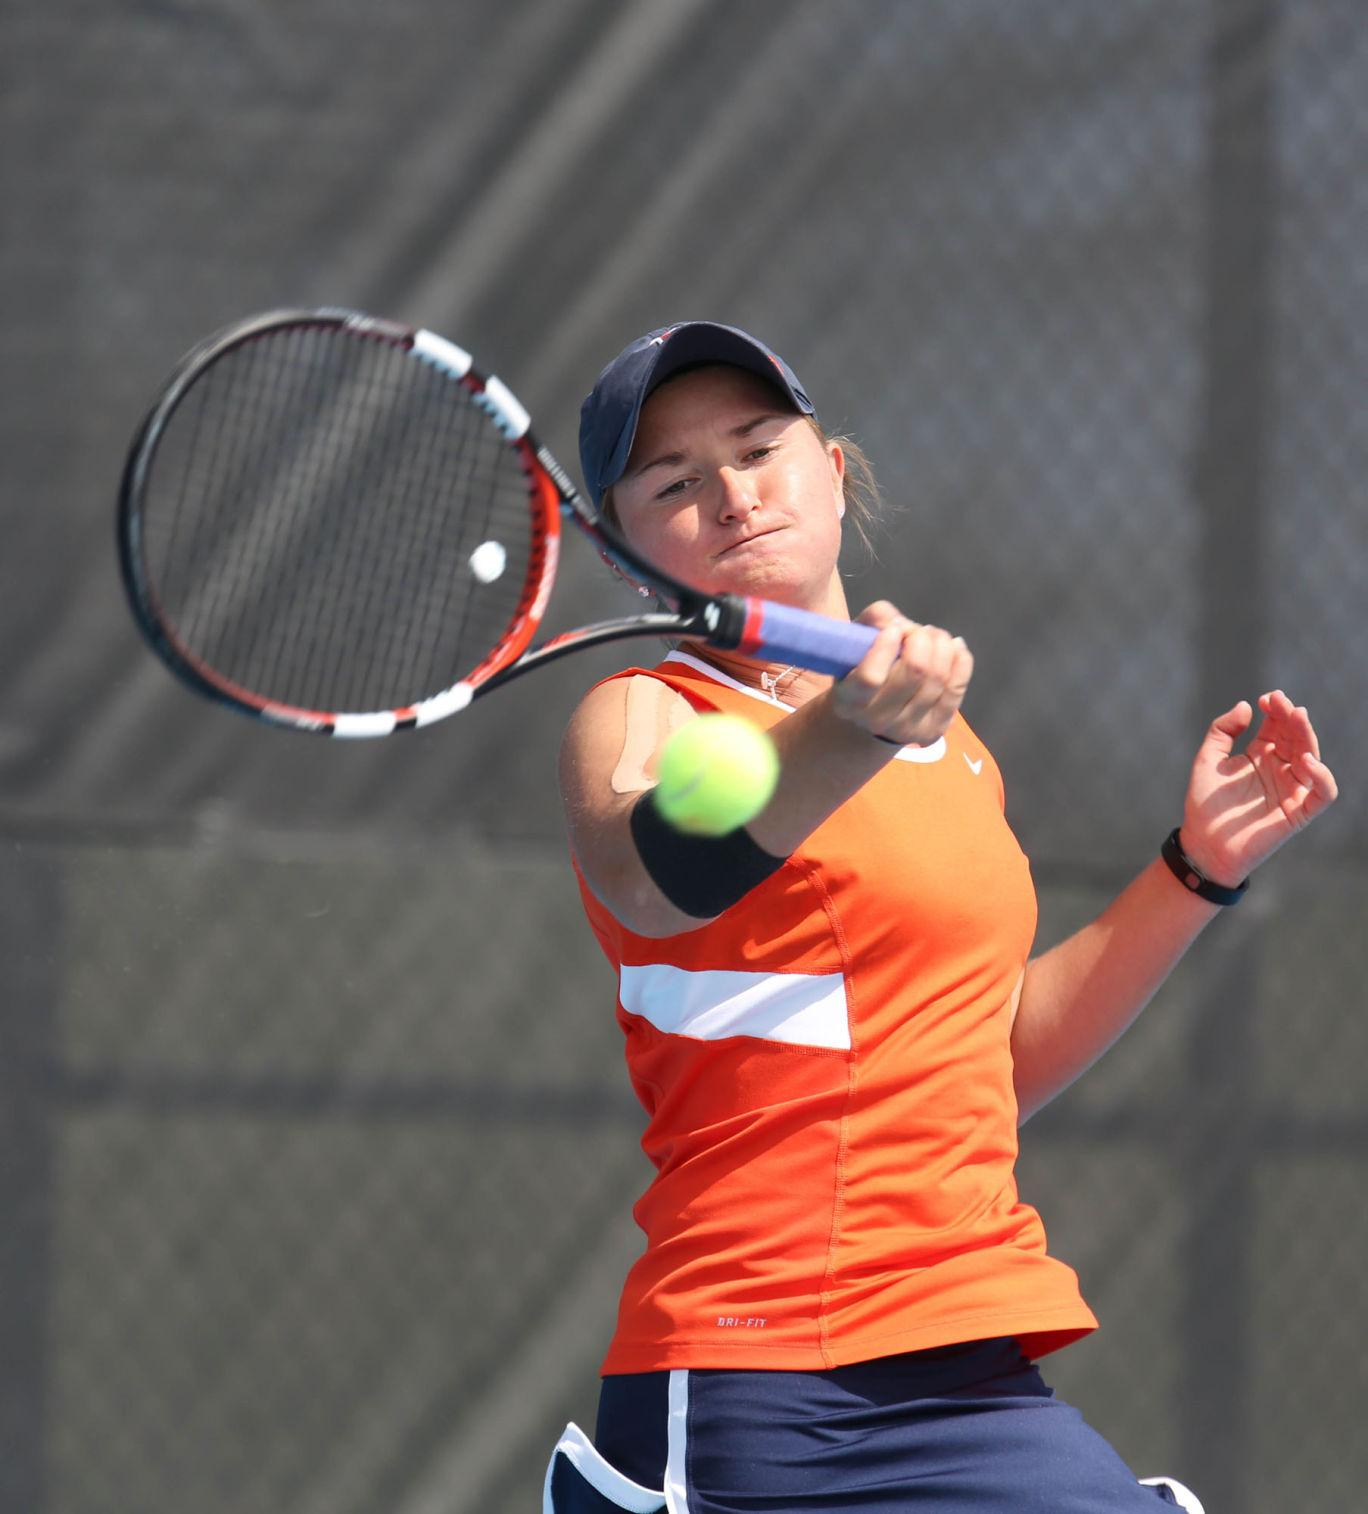 Illinois' Melissa Kopinski attempts to return the ball during the match against Rutgers at Atkins Tennis Center on Sunday. The Illini won 7-0.